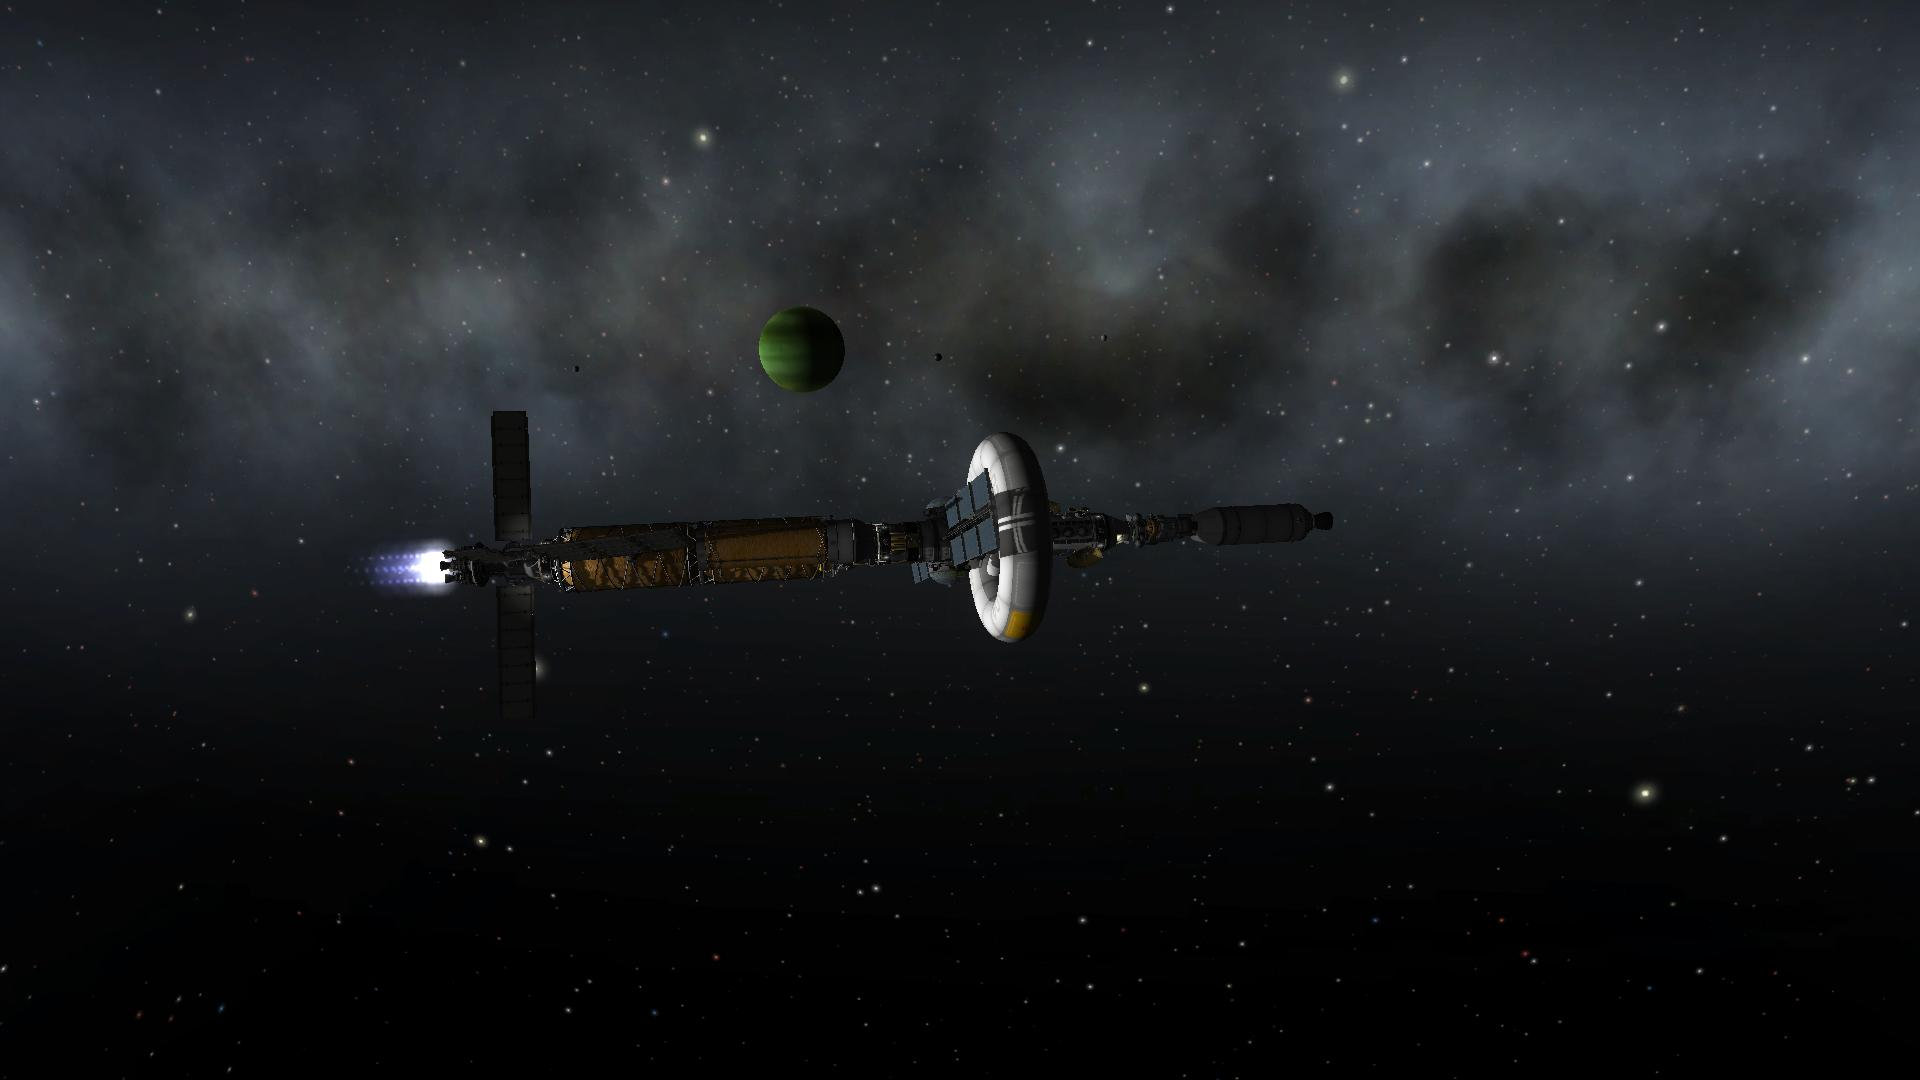 Finally at Jool